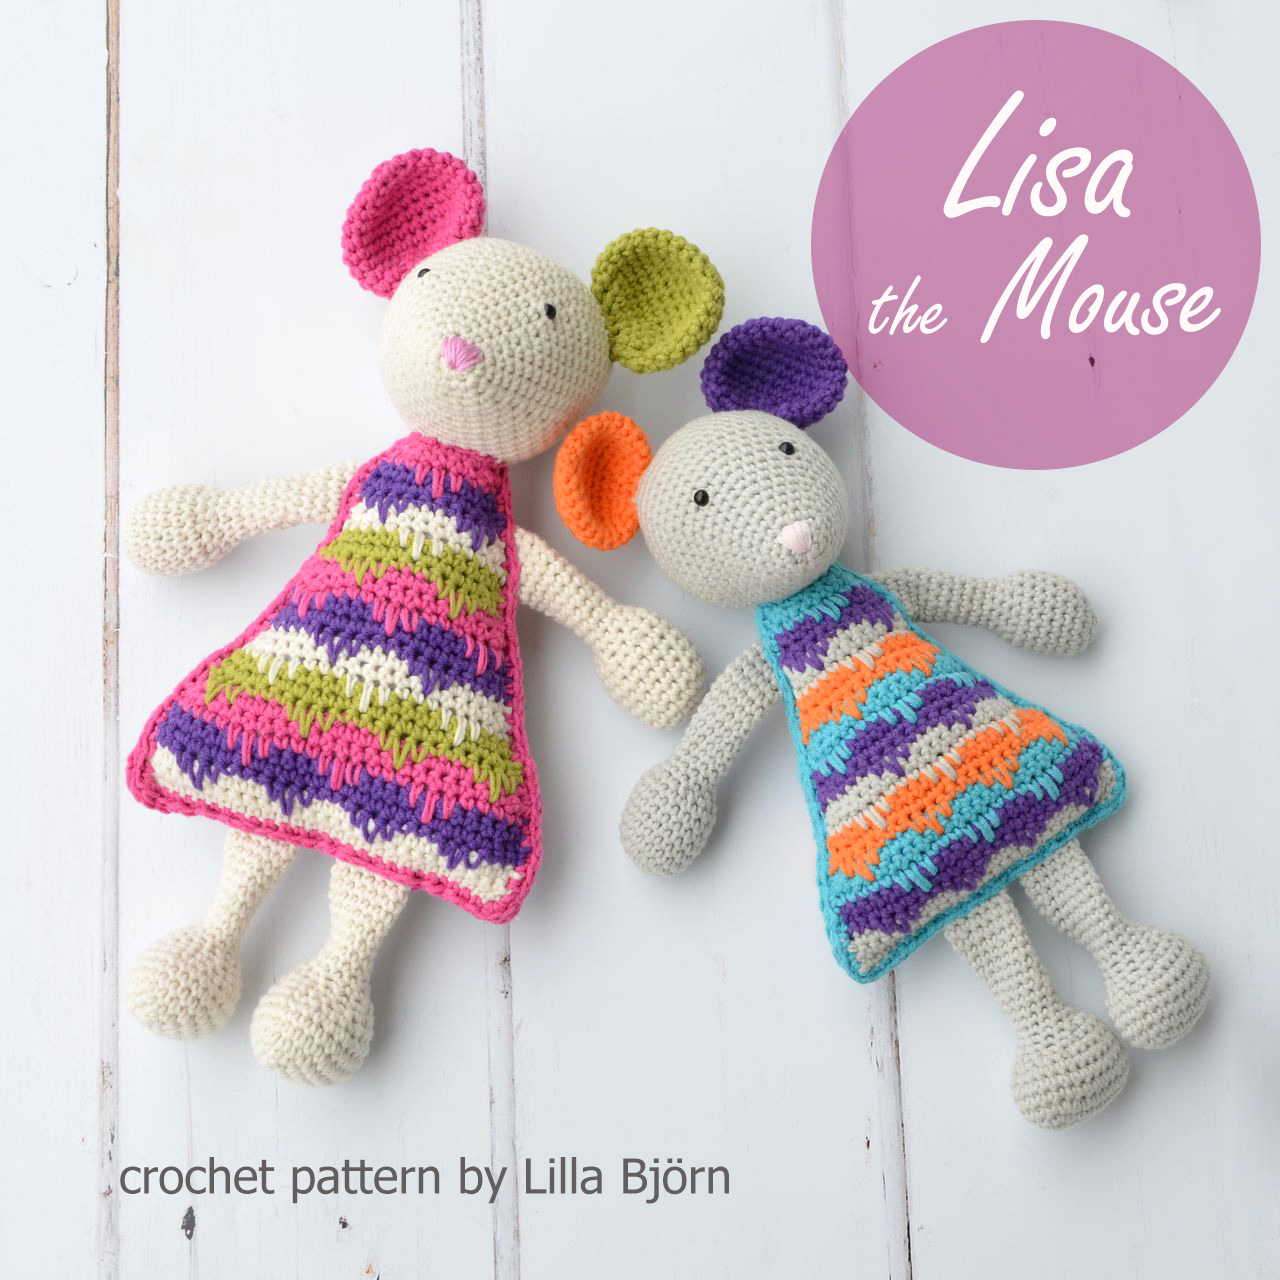 Lisa the Mouse - amigurumi crochet pattern by Lilla Bjorn